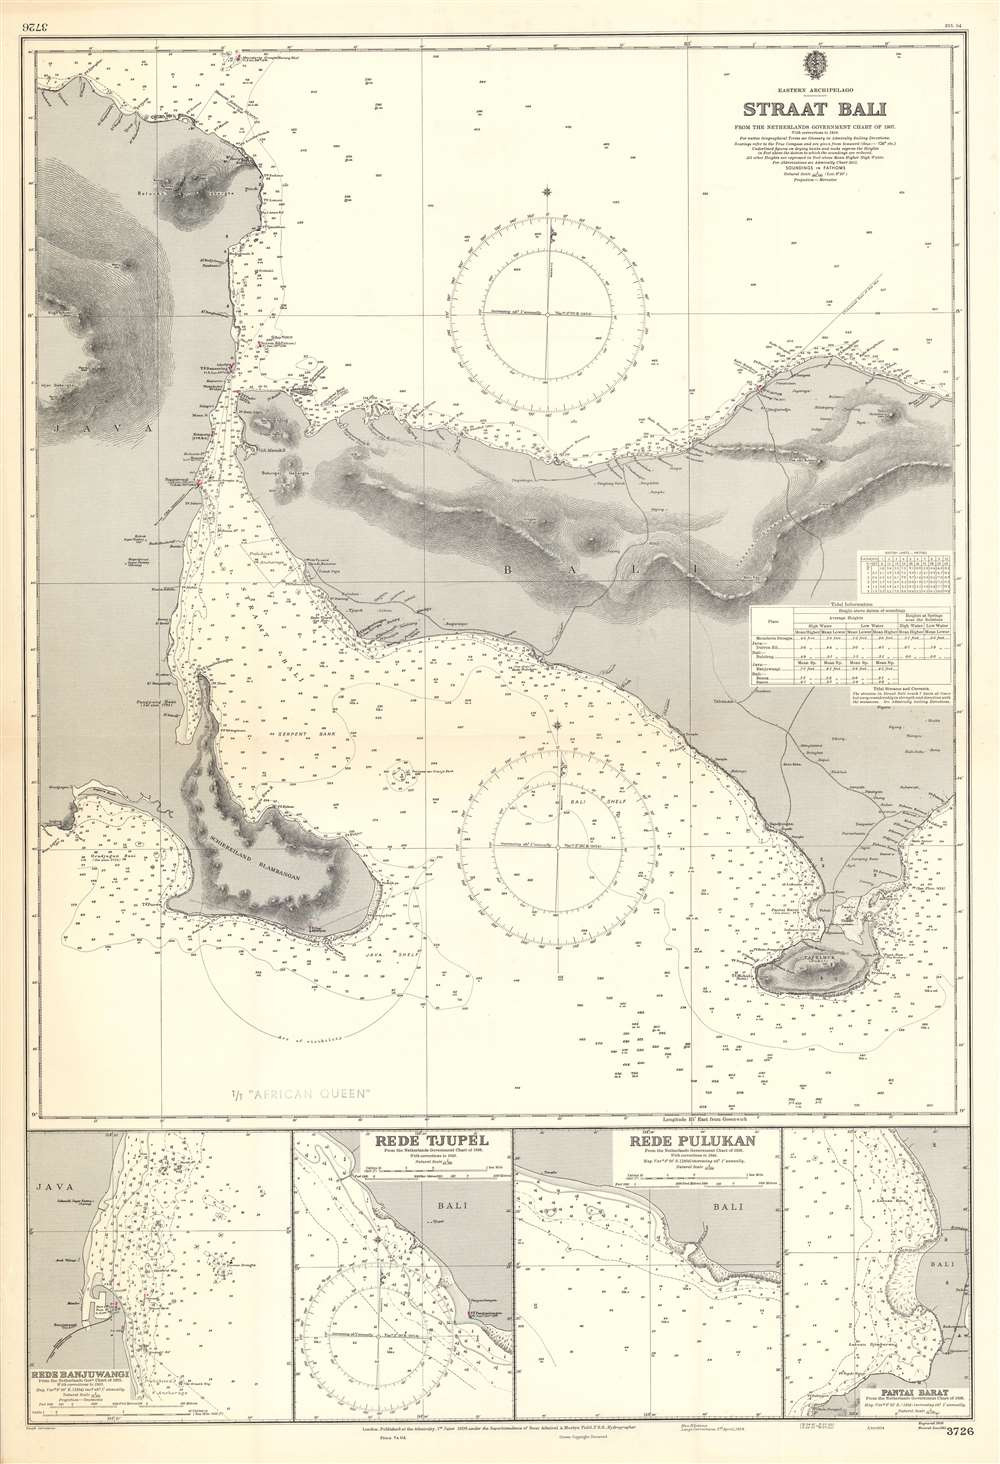 Eastern Archipelago Straat Bali from the Netherlands Government Chart of 1907 With Corrections to 1954. - Main View